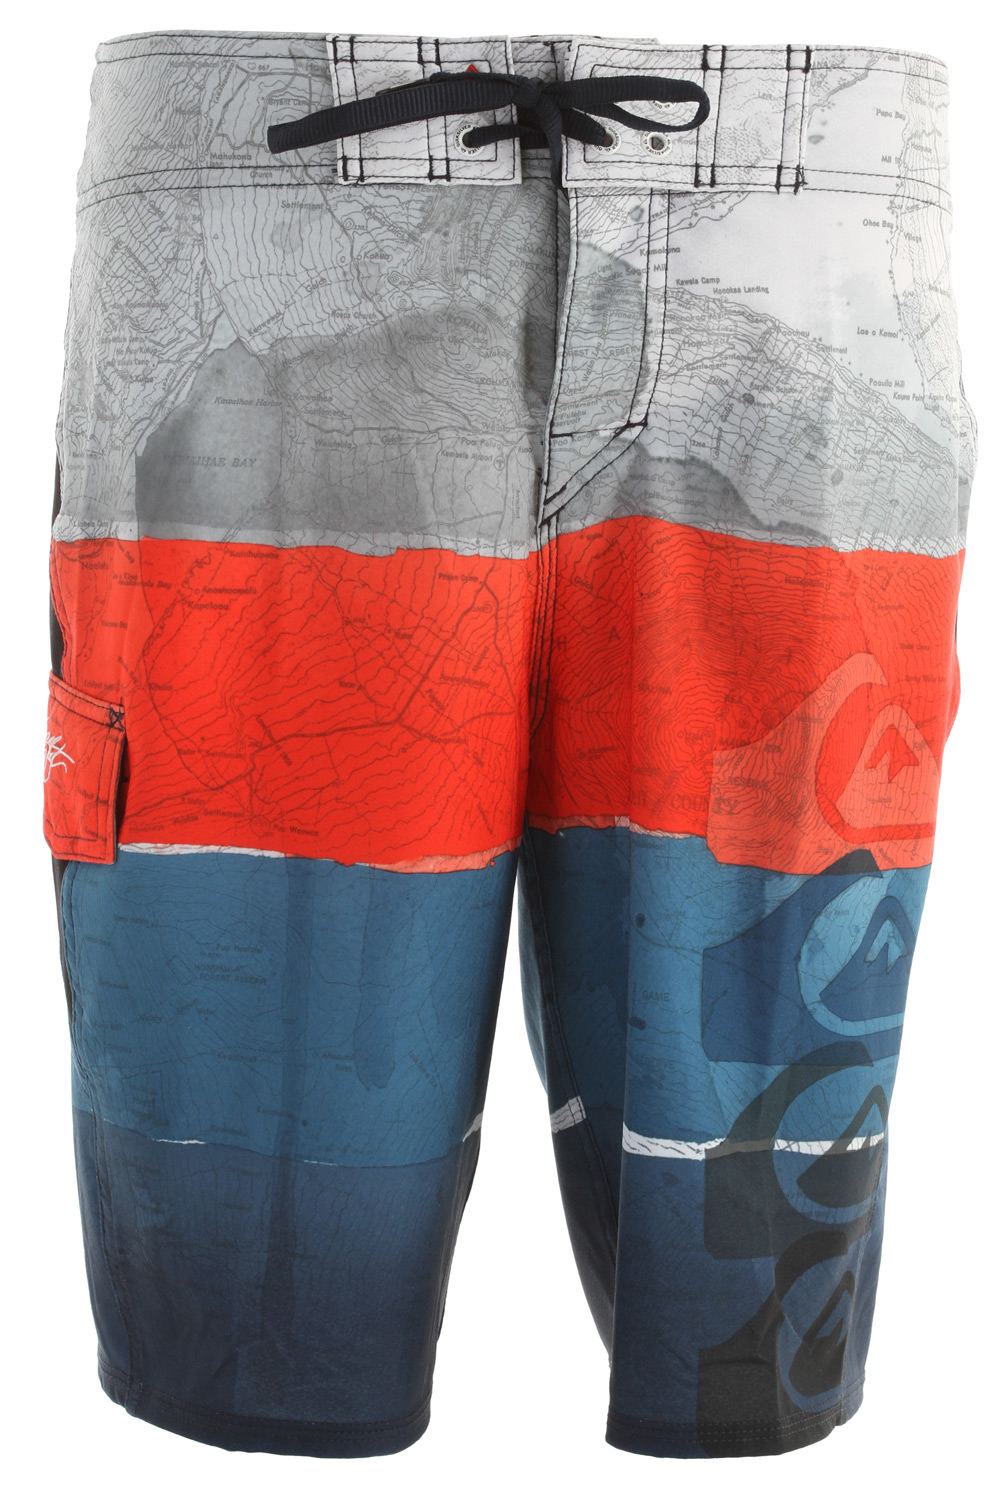 Surf The alpha dog of the surf world, ten times world champion, Kelly Slater put his signature on these Cypher Alpha boardshorts. Think it's time for some new trunks.Key Features of the Quiksilver Cypher Alpha Boardshorts: Kelly Slater 2011 Signature Series 88% Polyester 12% Spandex 4 Way Stretch Diamond Dobby 21 inch Outseam Double up closure with new Diamond Fly Machine Wash - $69.50